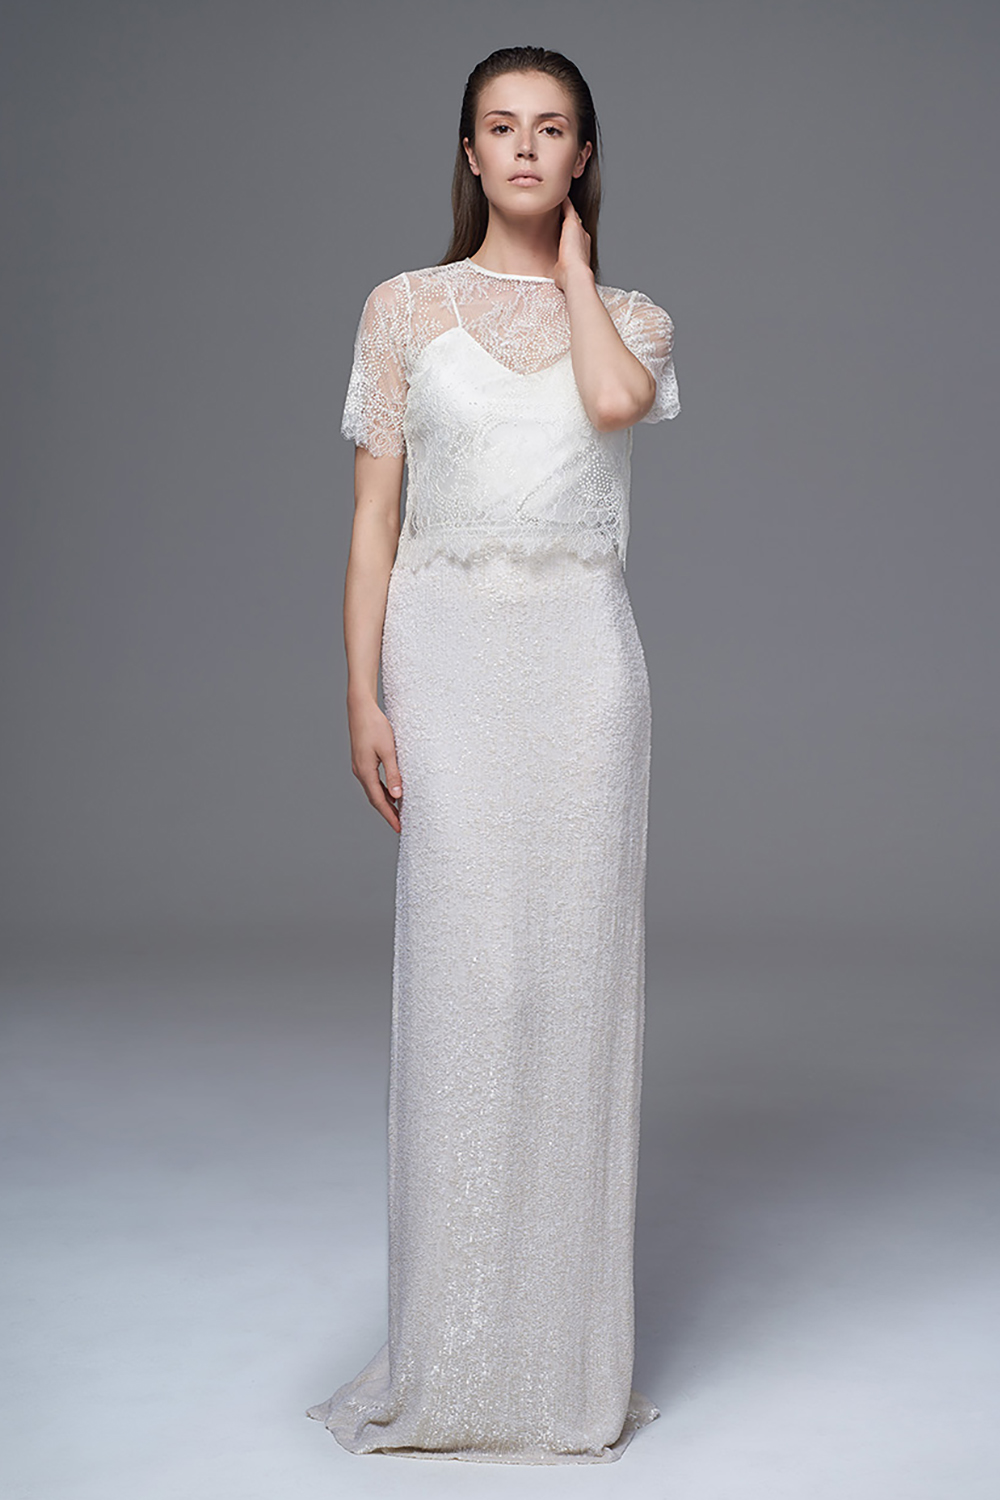 halfpenny collection glitter wedding dress BRIDAL WEDDING DRESS THE ANNABEL FRENCH LACE AND GLITTER BOX TEE STYLED WITH THE CLASSIC IRIS CAMISOLE AND THE